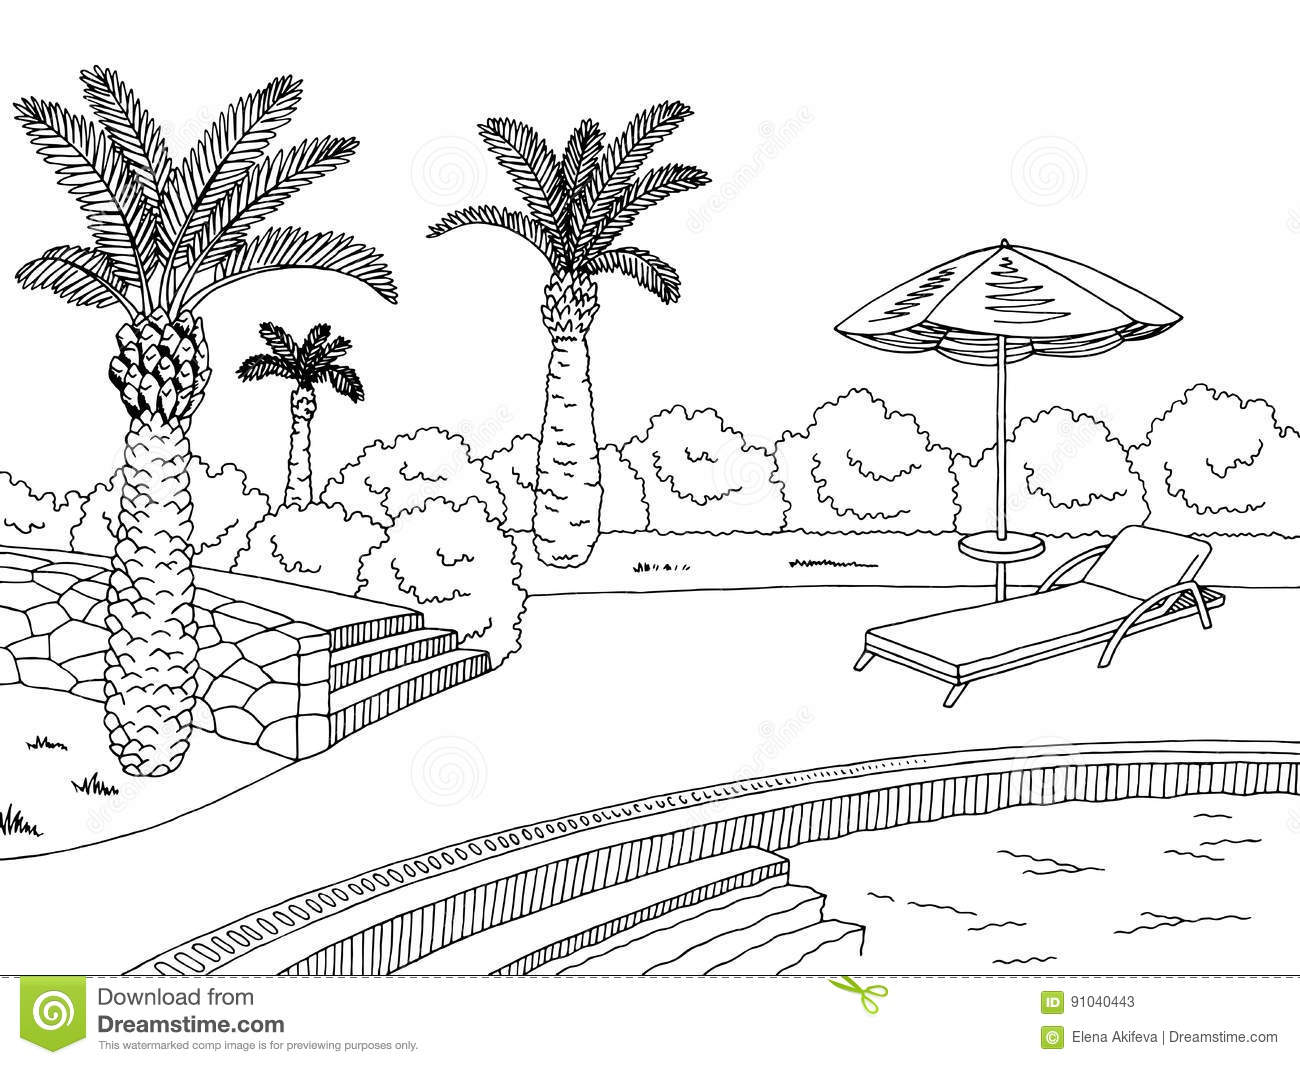 Swimming Pool Graphic Black White Landscape Sketch Illustration